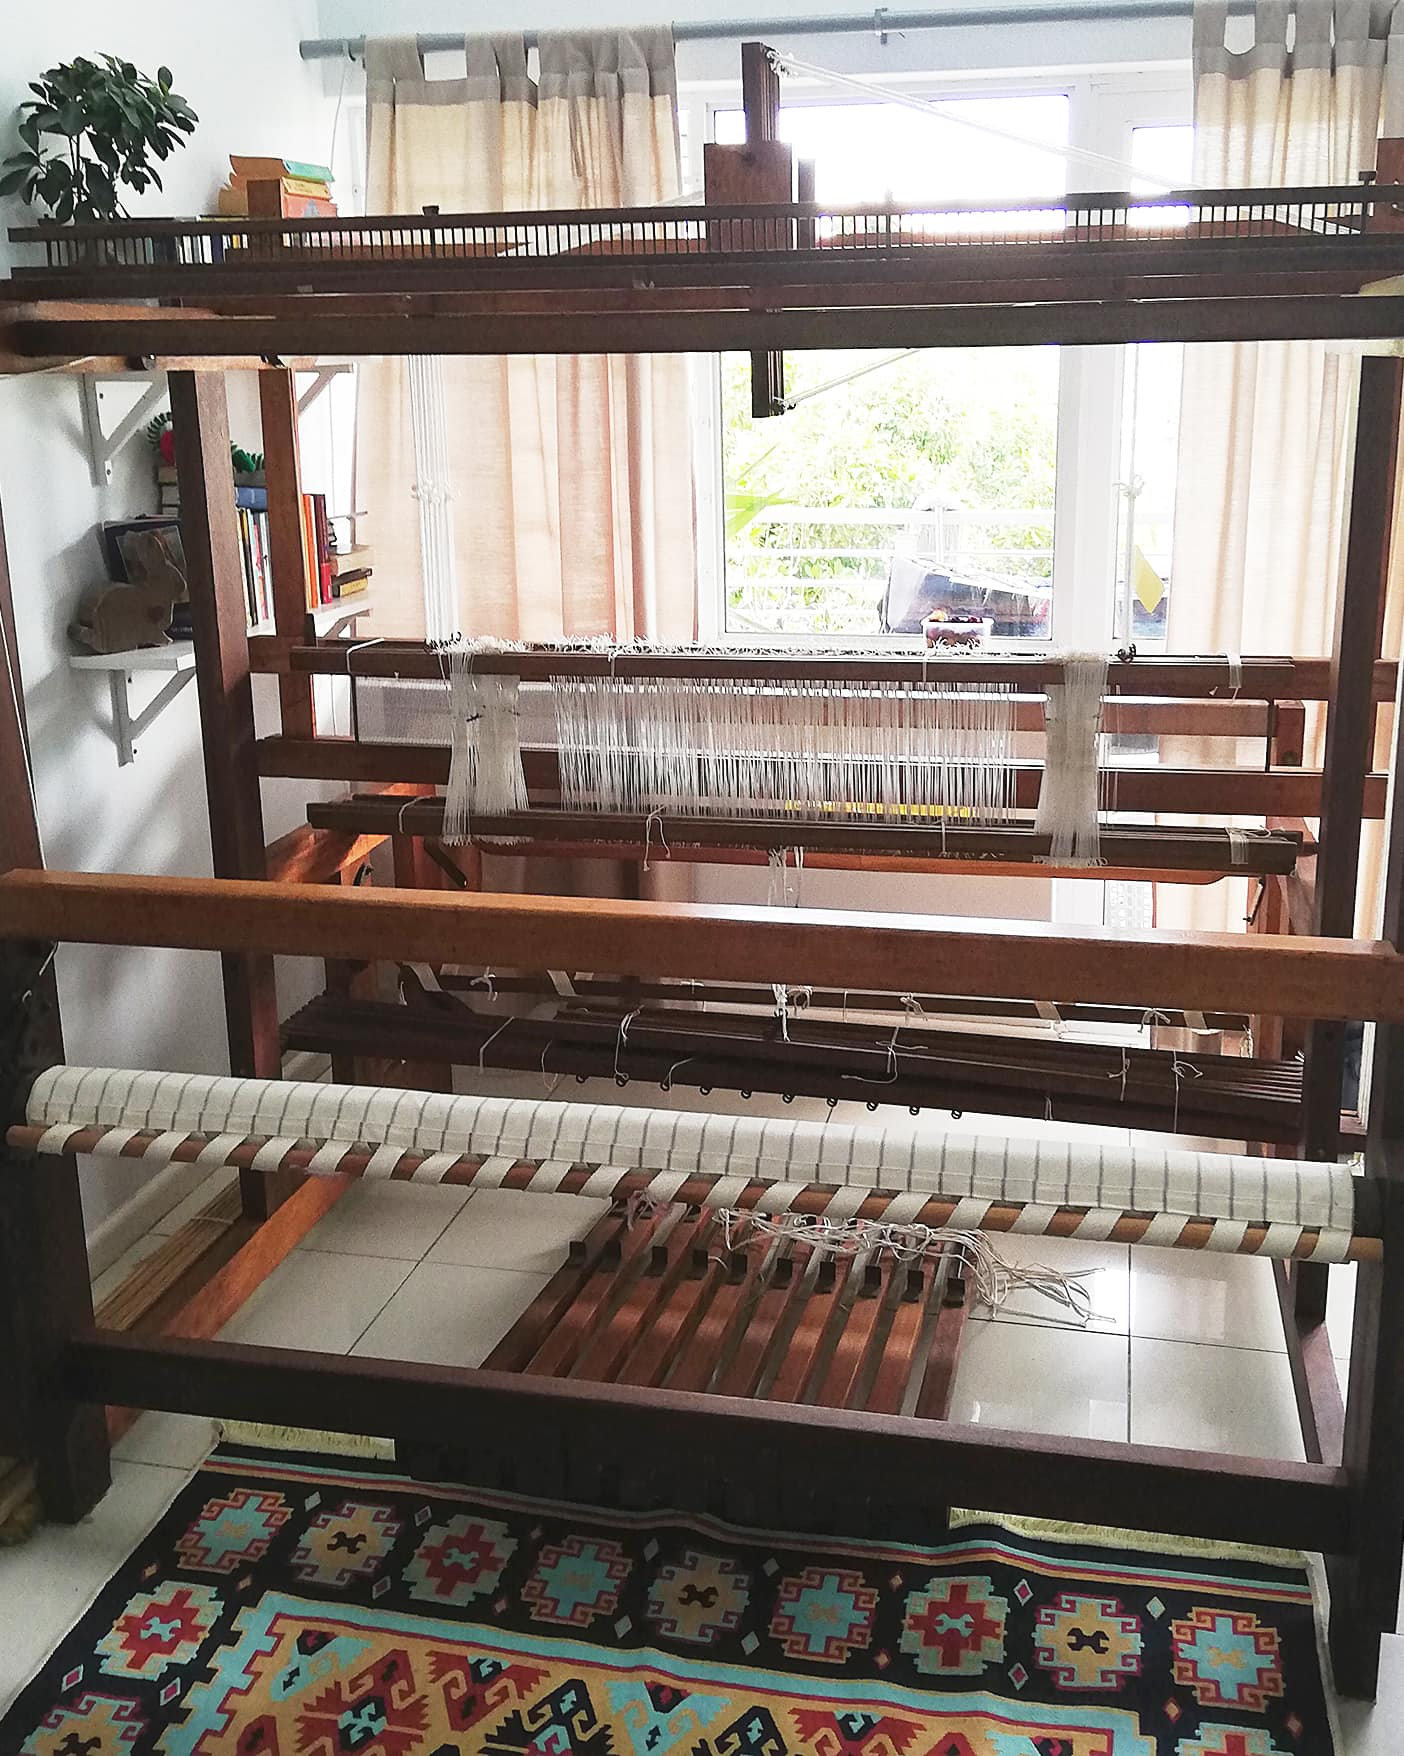 The weaving handloom in its full glory, set up and ready to weave at the home of Mungo designer, Lenore Schroeder